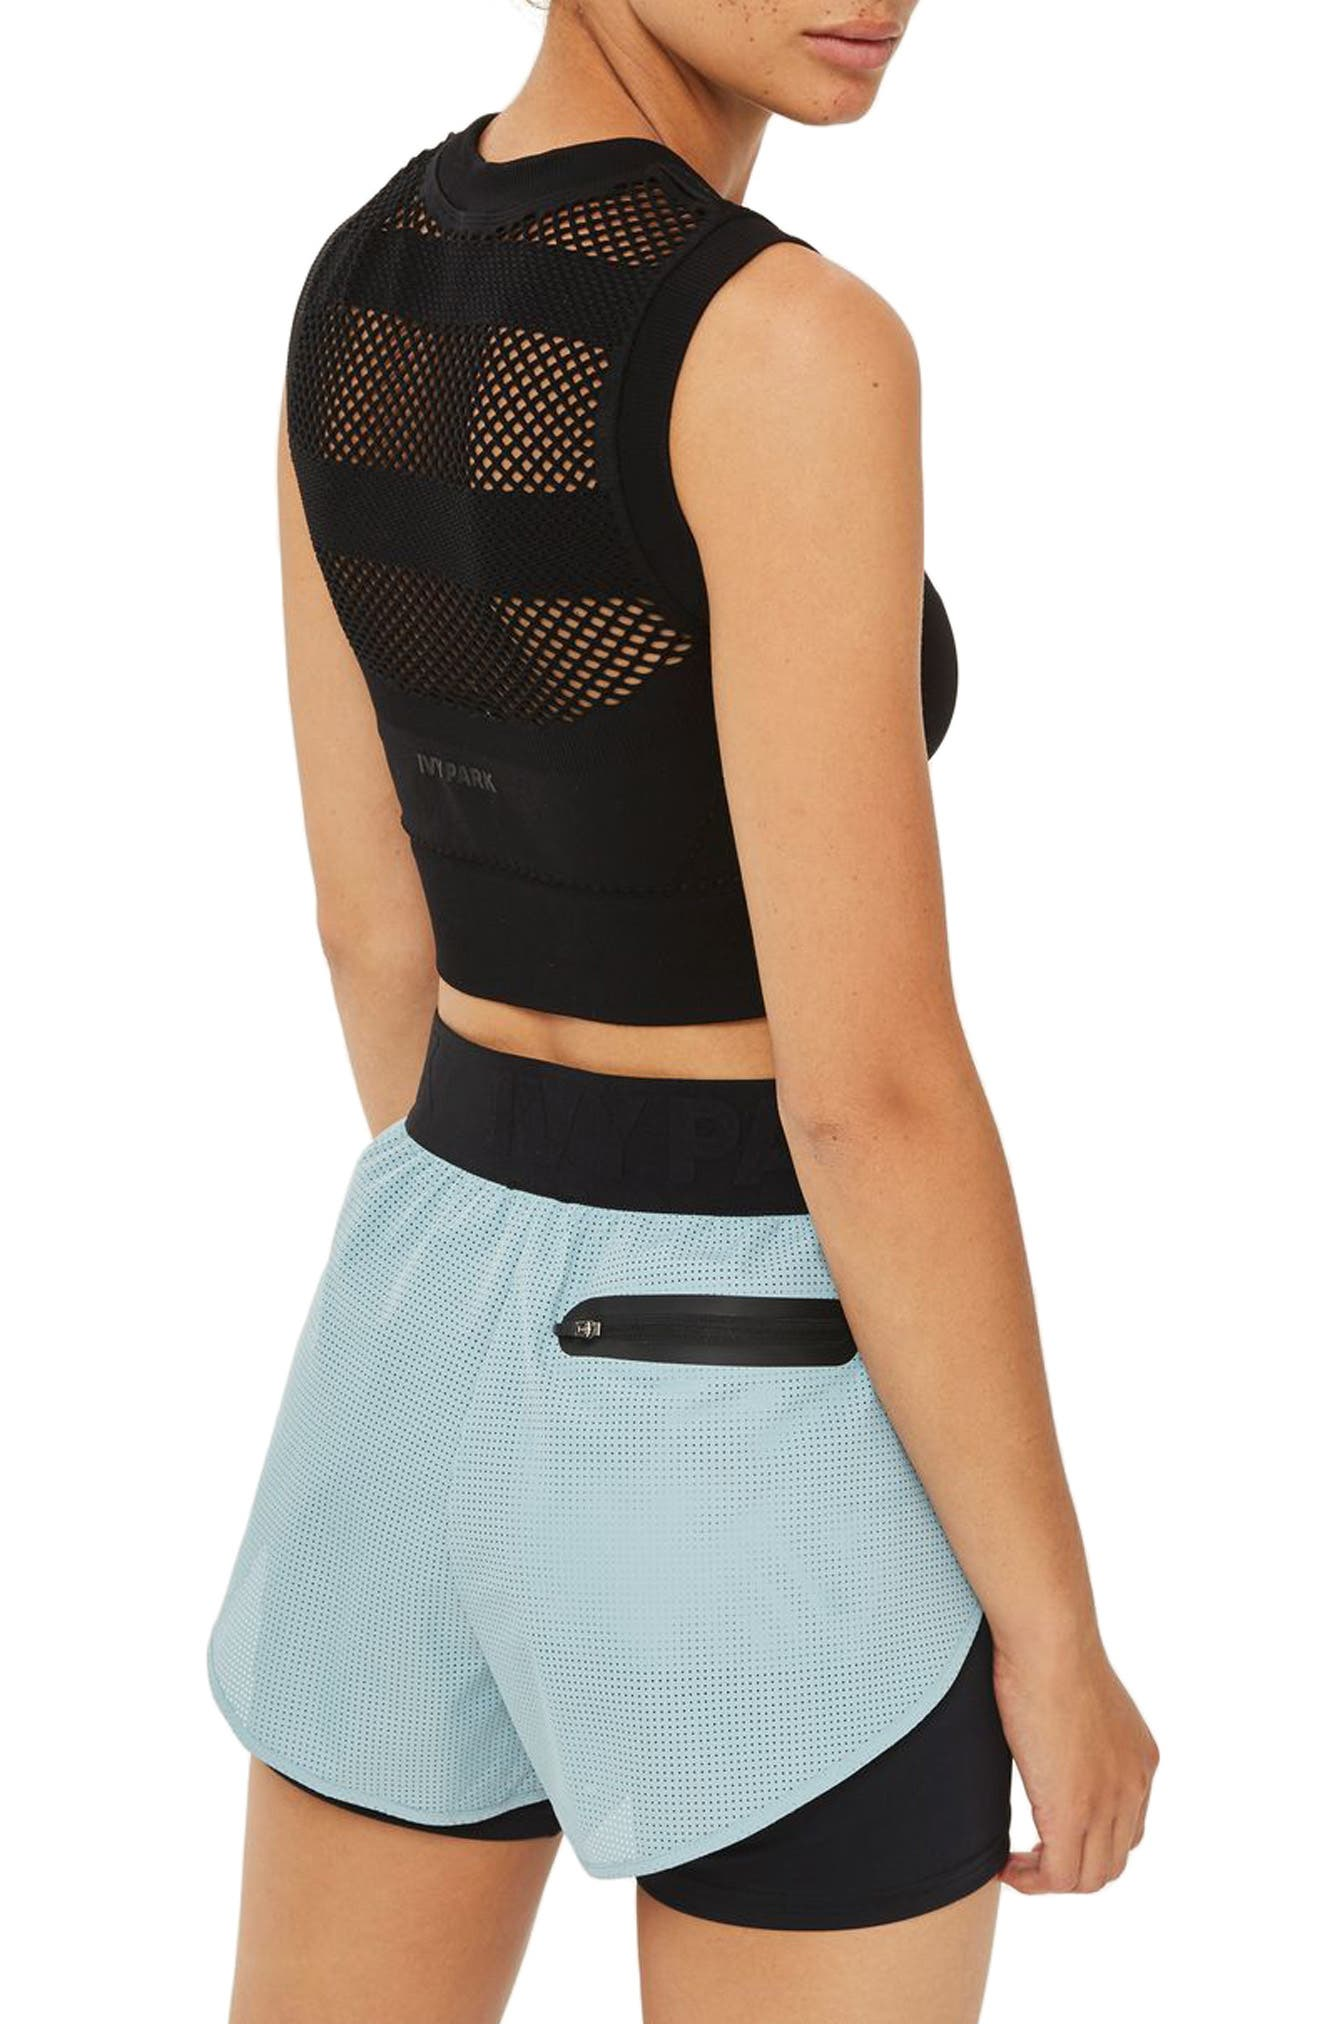 Alternate Image 3  - IVY PARK® Perforated 2-in-1 Runner Shorts